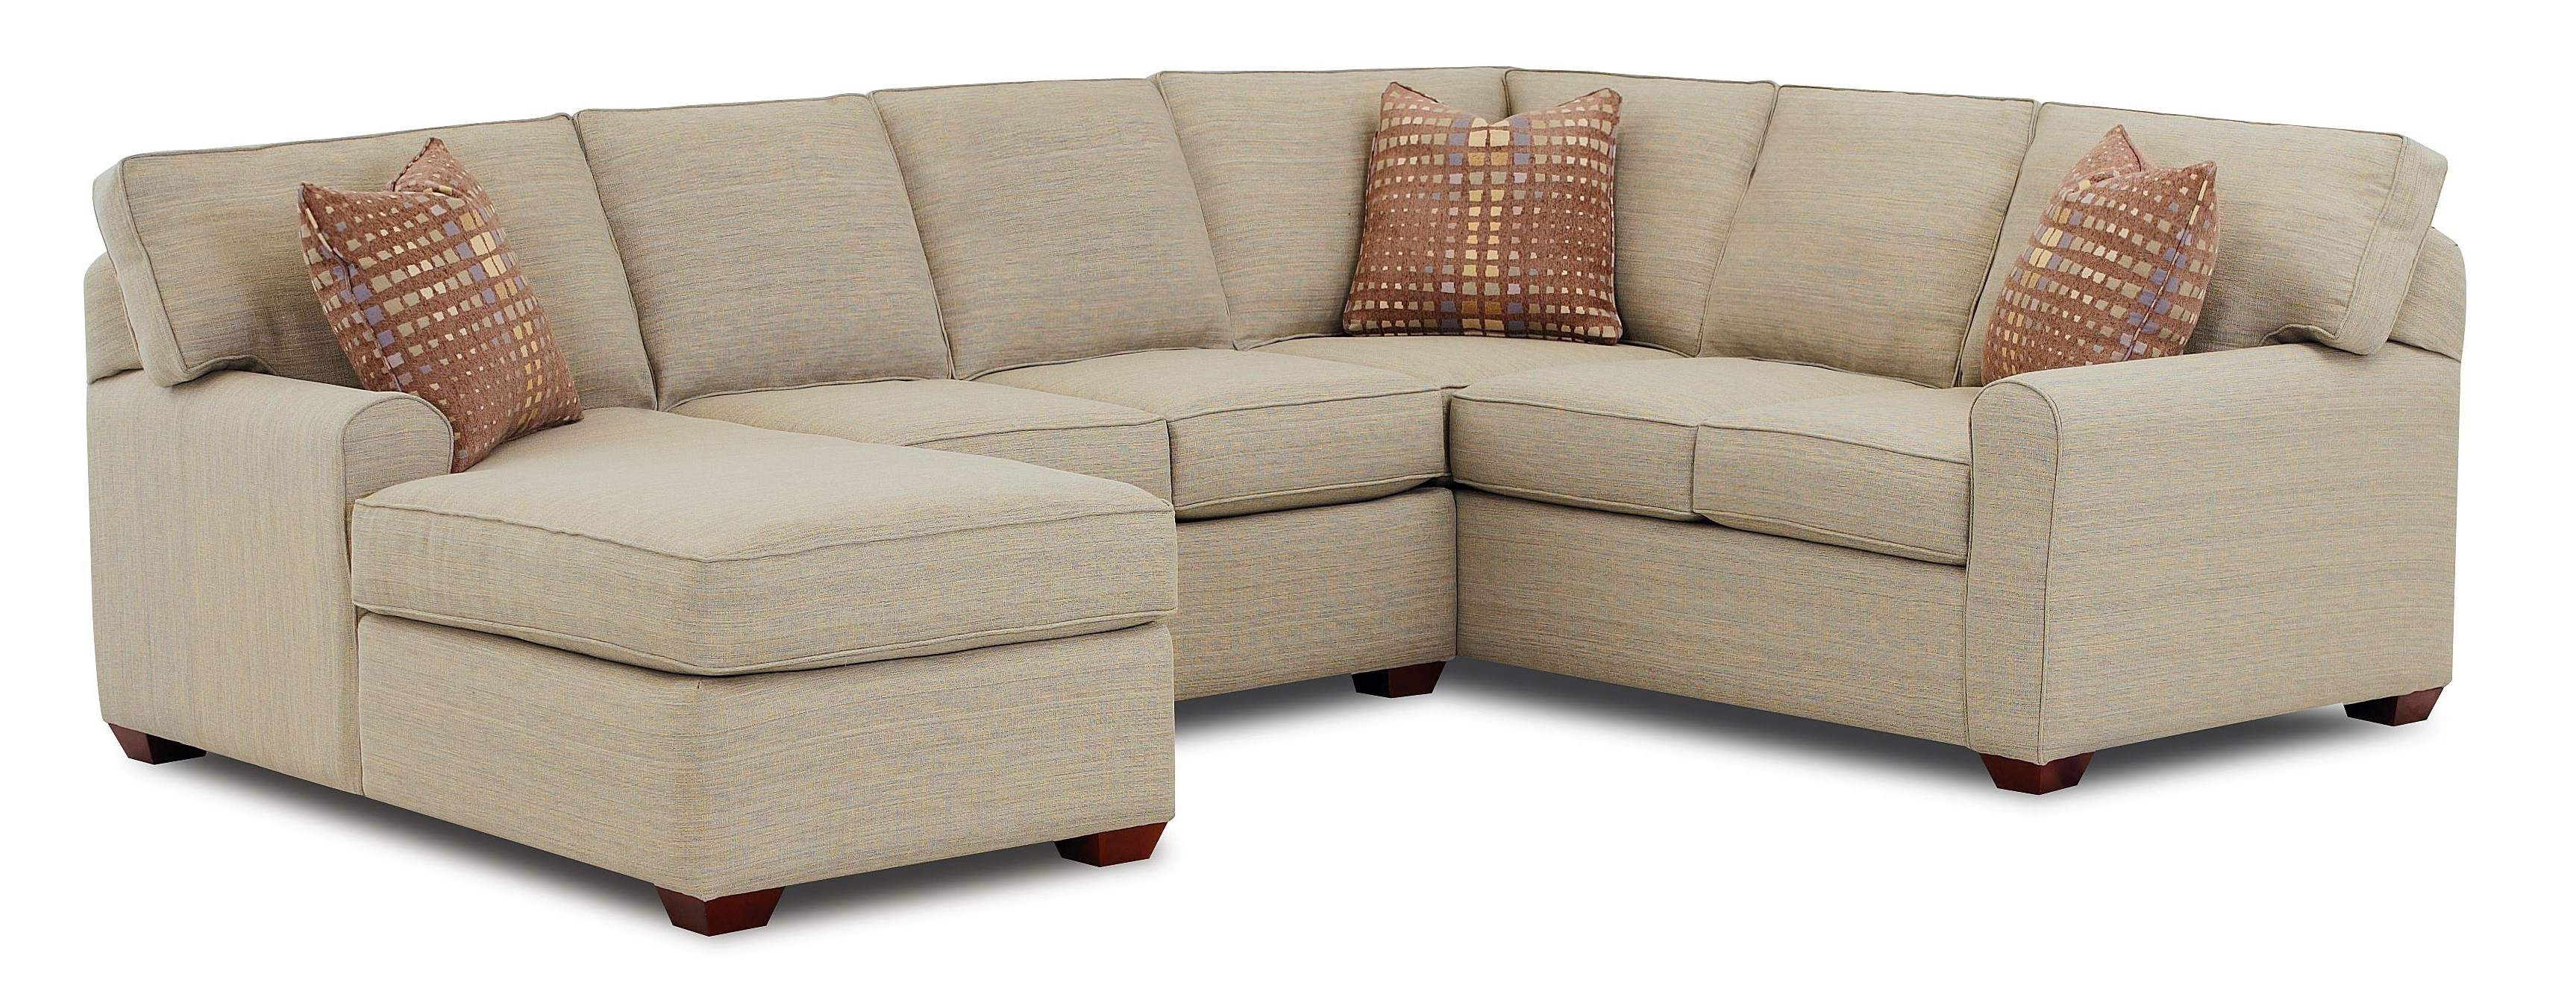 Widely Used Furniture: Chaise Sofa Sectional Chaise Sectional Inside Sectional Chaise Sofas (View 13 of 15)